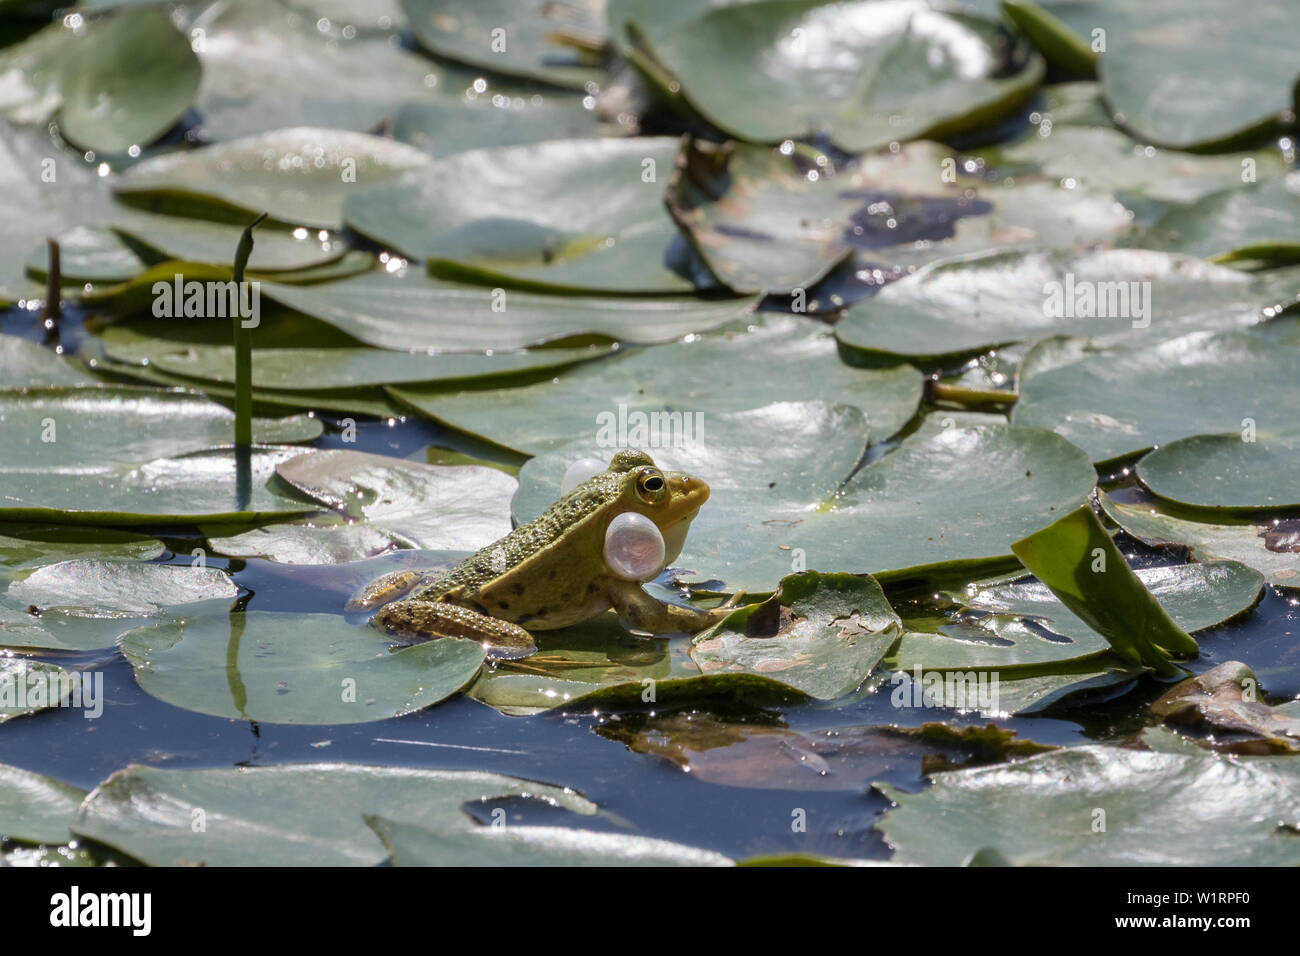 Croaking frog with bloated vocal sack - Stock Image